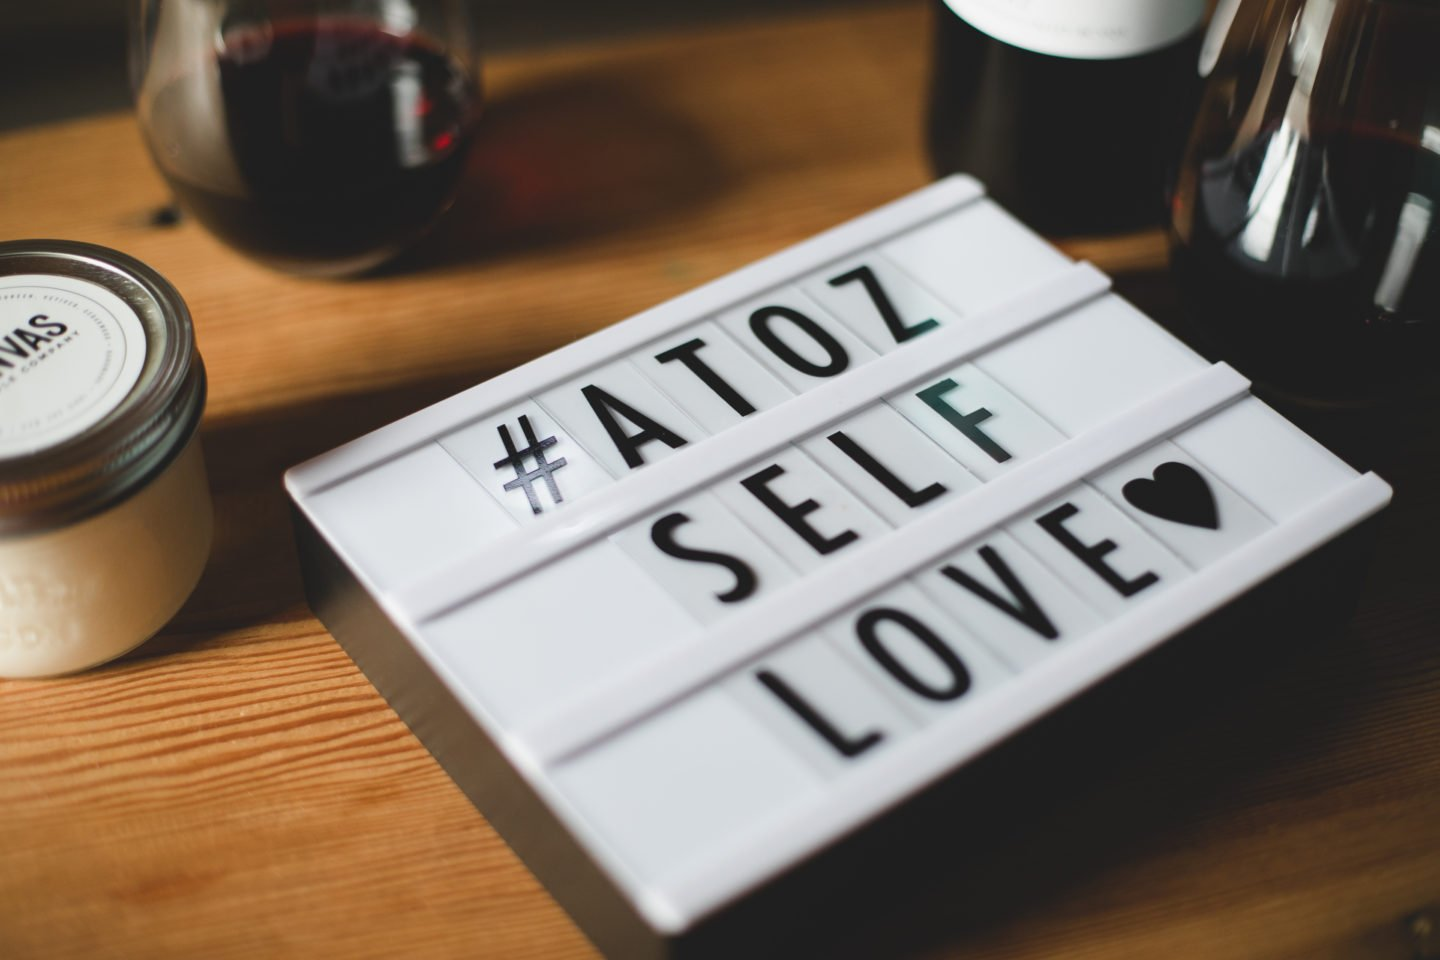 The Best BC Yoga for Self Love #Atozselflove